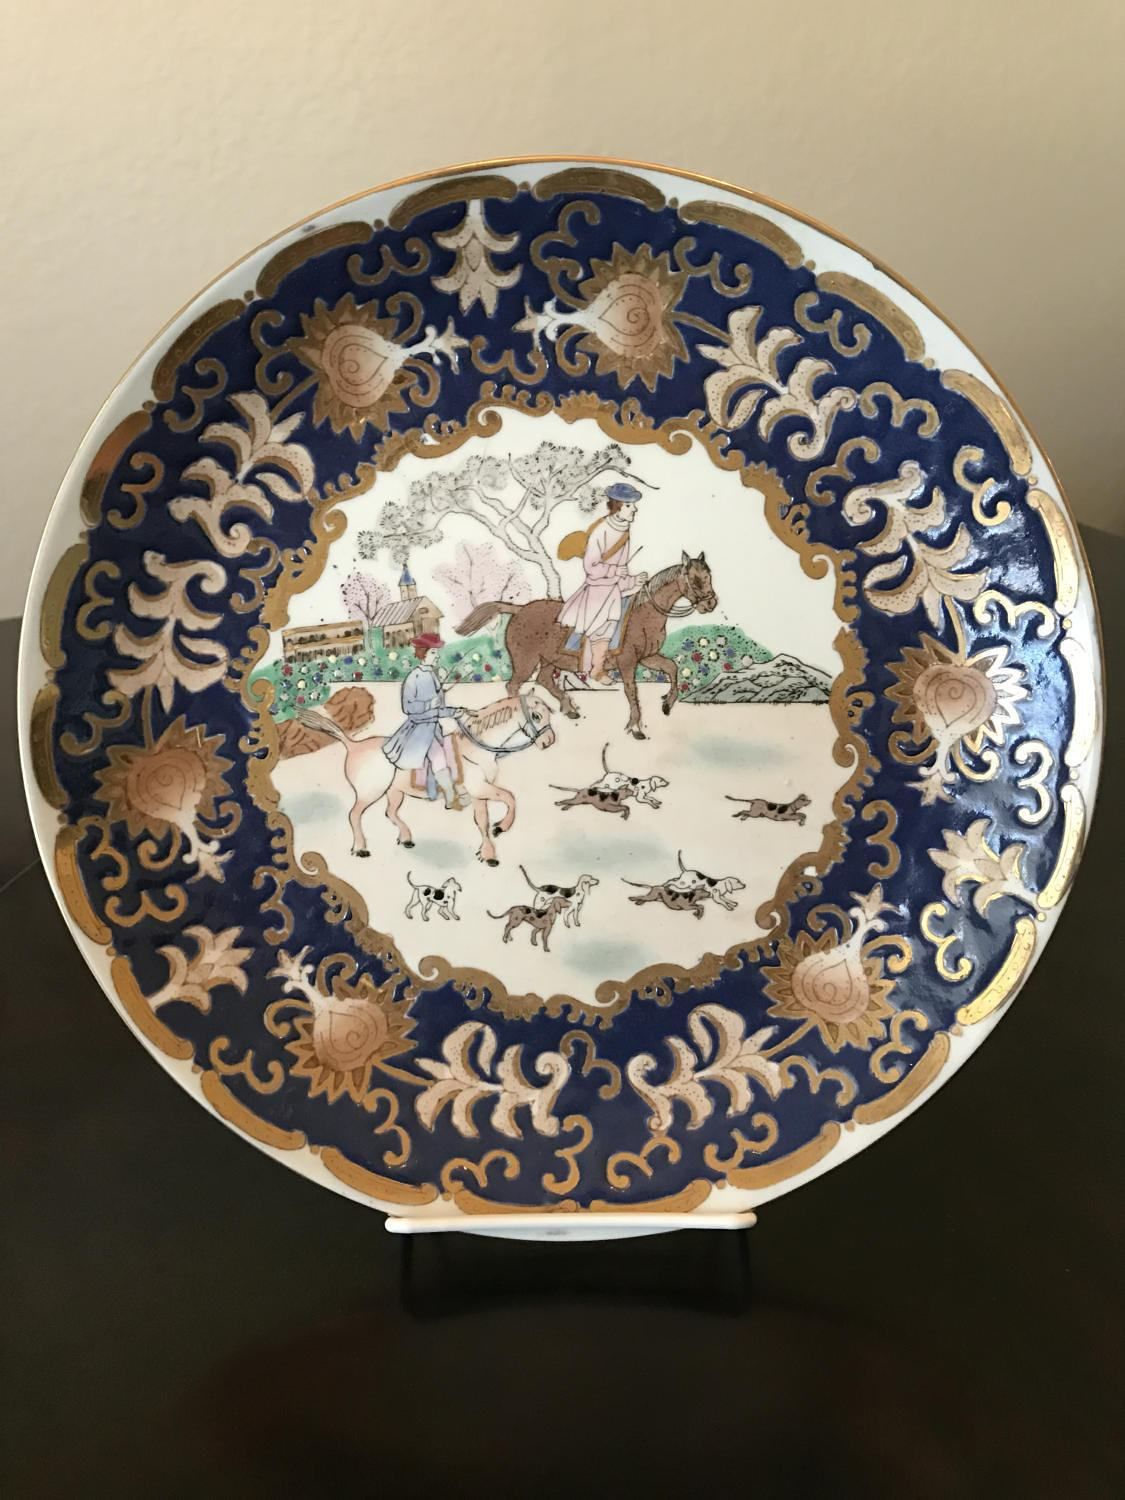 Mid Century Chinese Decorative Plate/WBI Export Plate/Hunting Scene Plate by BazemoreVault on & Mid Century Chinese Decorative Plate/WBI Export Plate/Hunting Scene ...